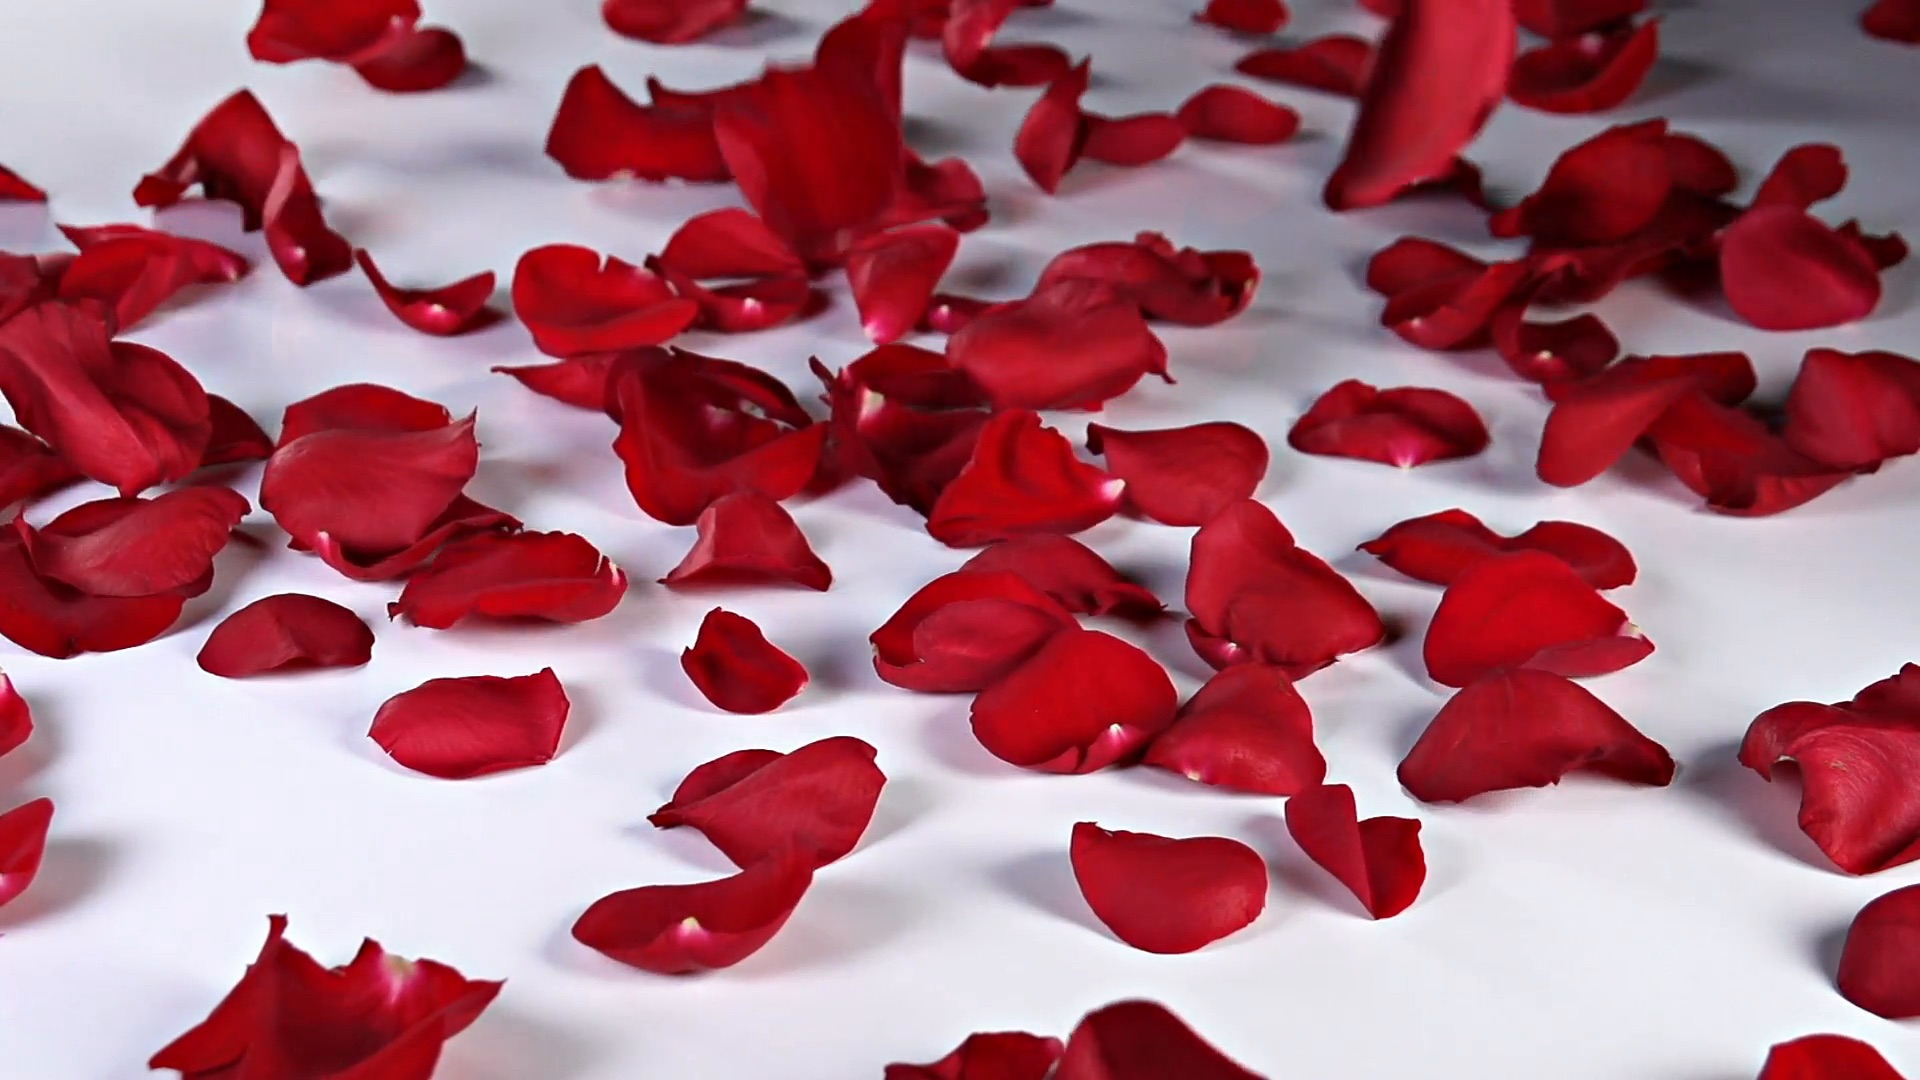 romanric night rose petals